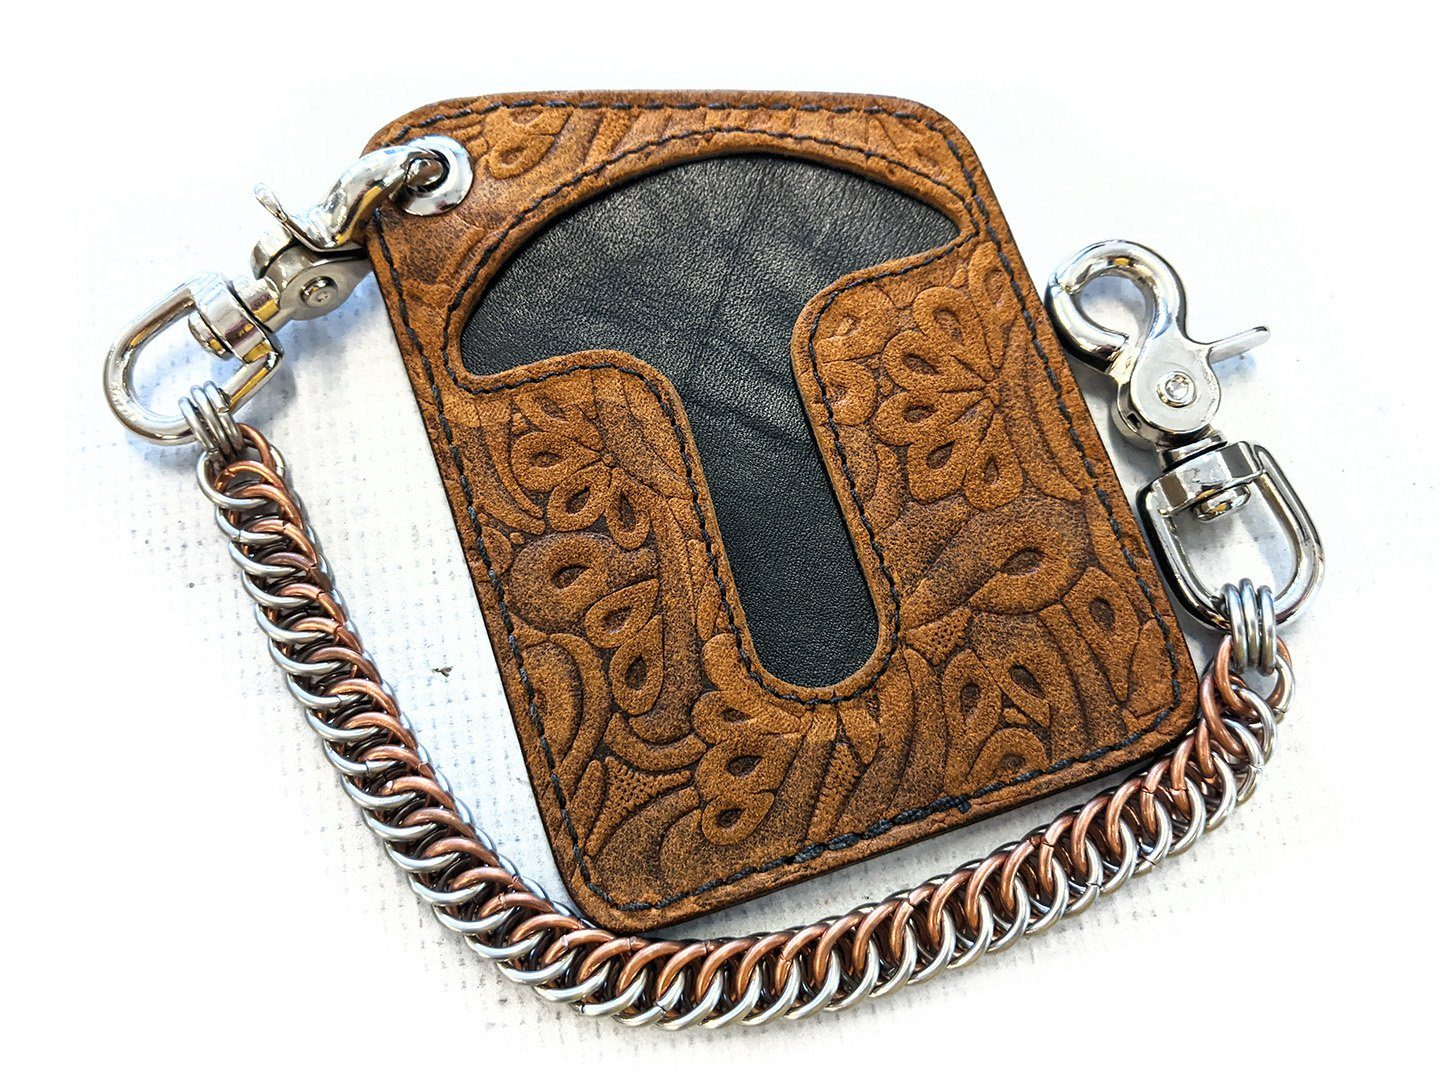 Puritan Chain Wallet -Mariposa Cowhide